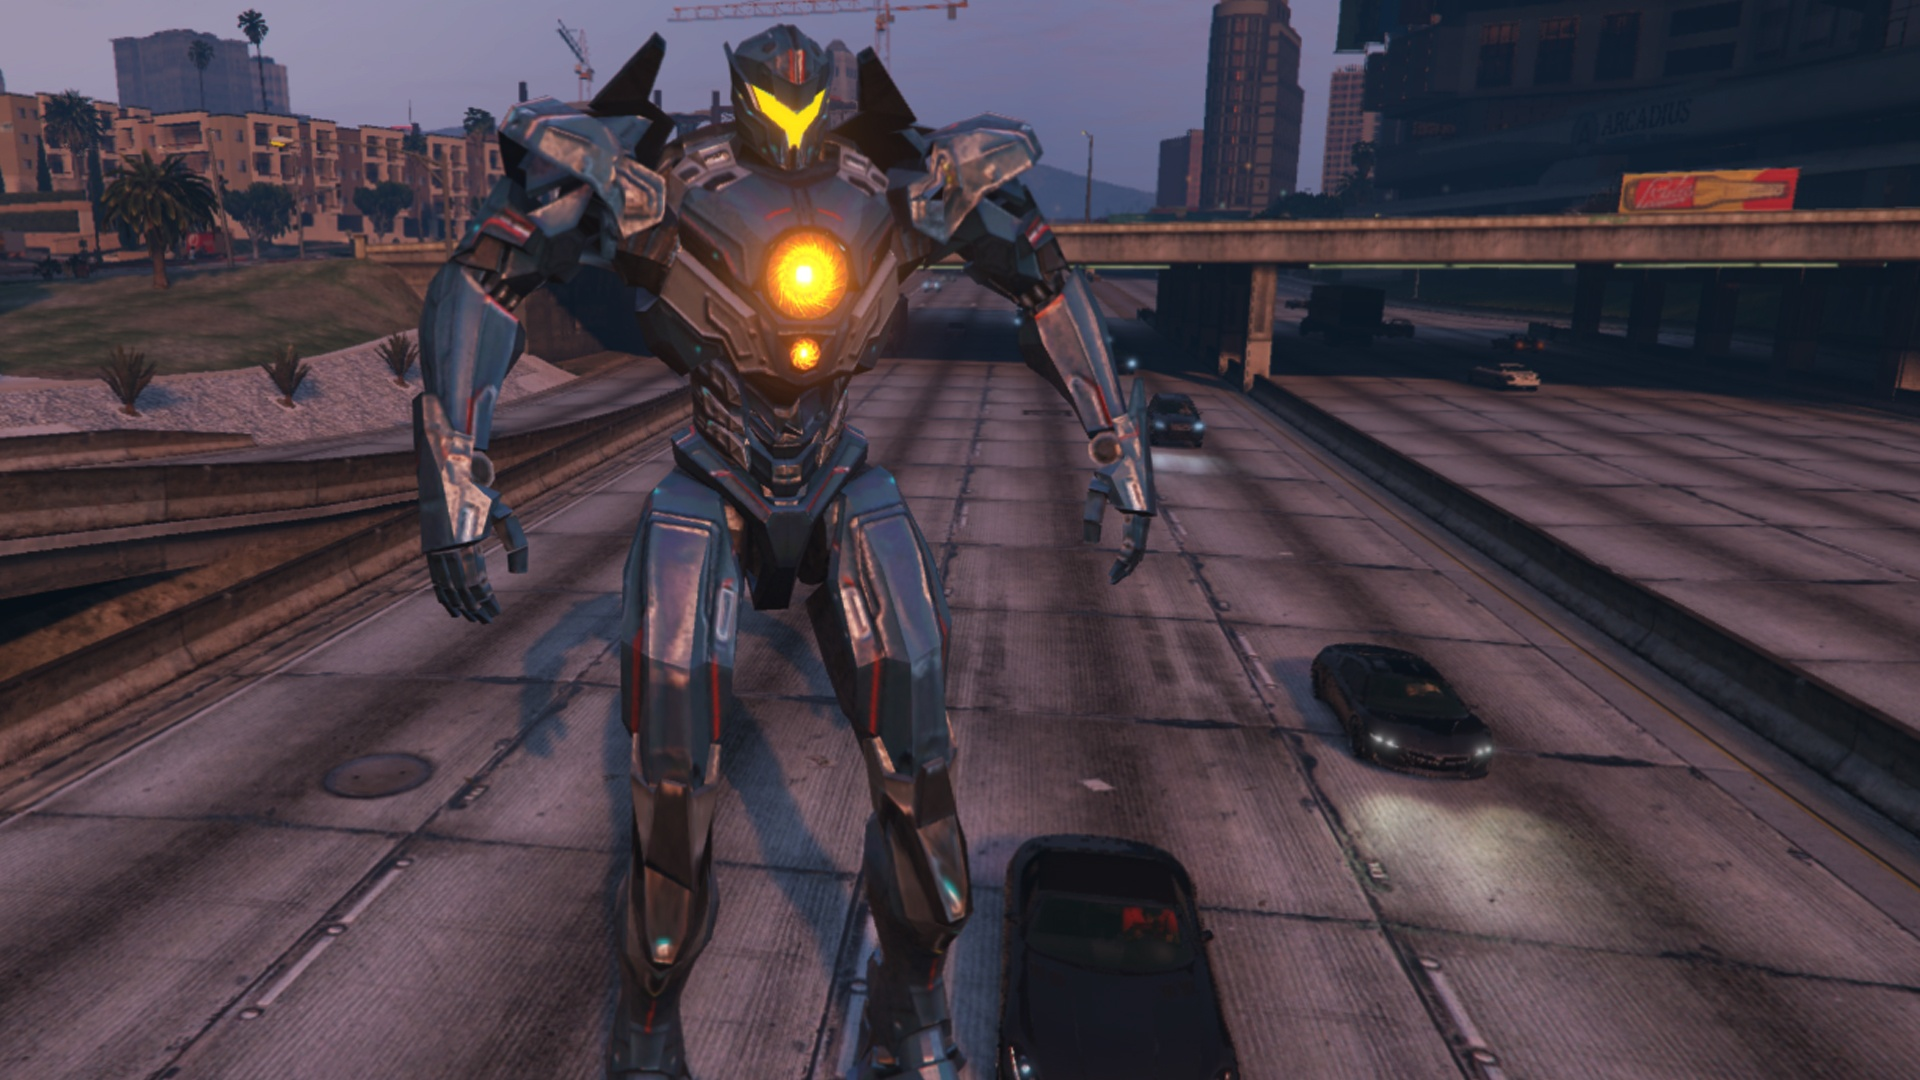 Gipsy Avenger Pacific Rim Uprising [Add on Ped]   GTA5 Modscom 1920x1080